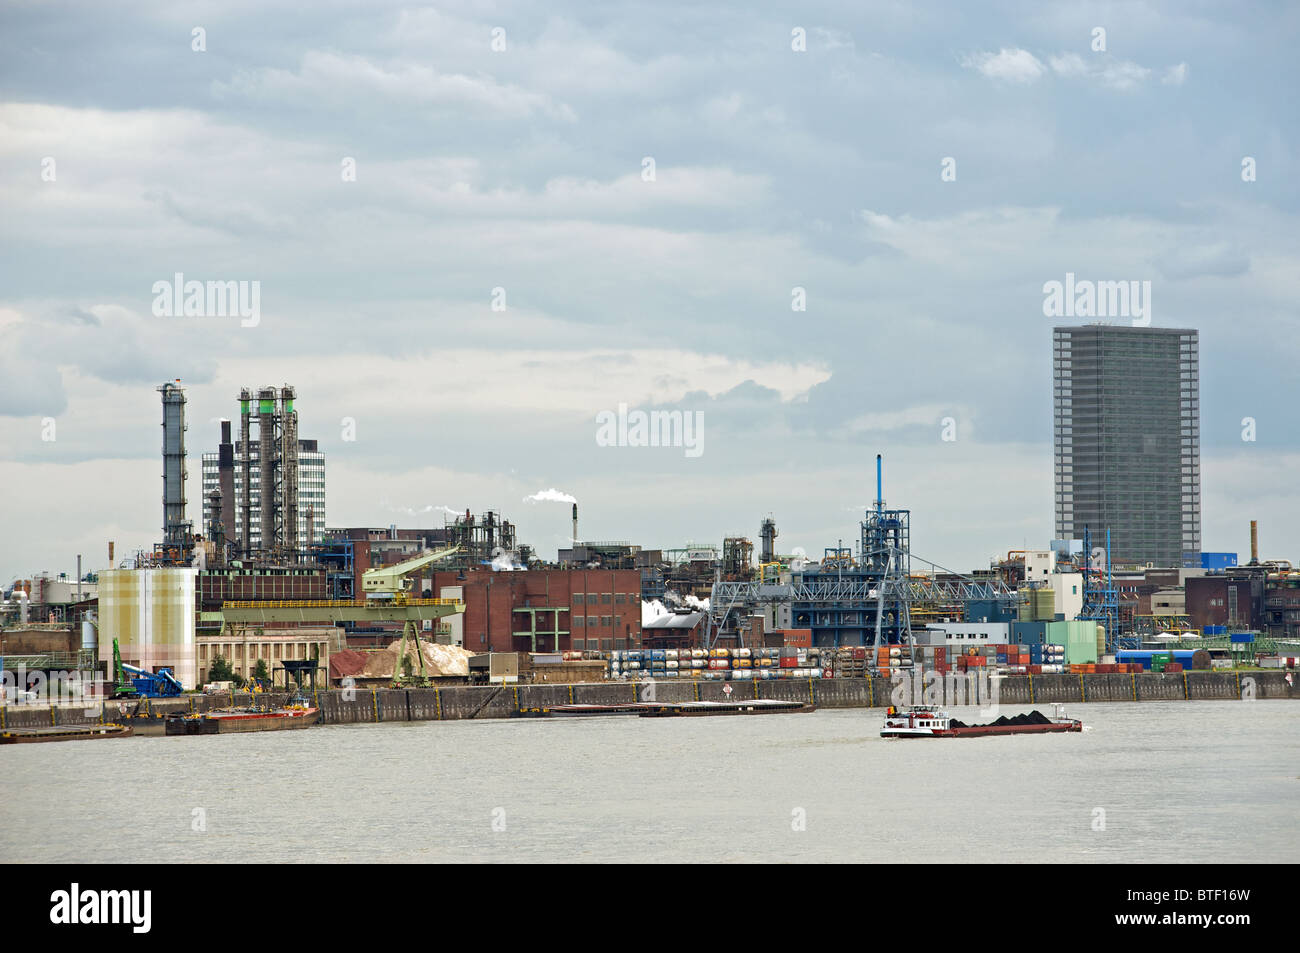 Bayer chemical works beside the river Rhine, Leverkusen, Germany. - Stock Image